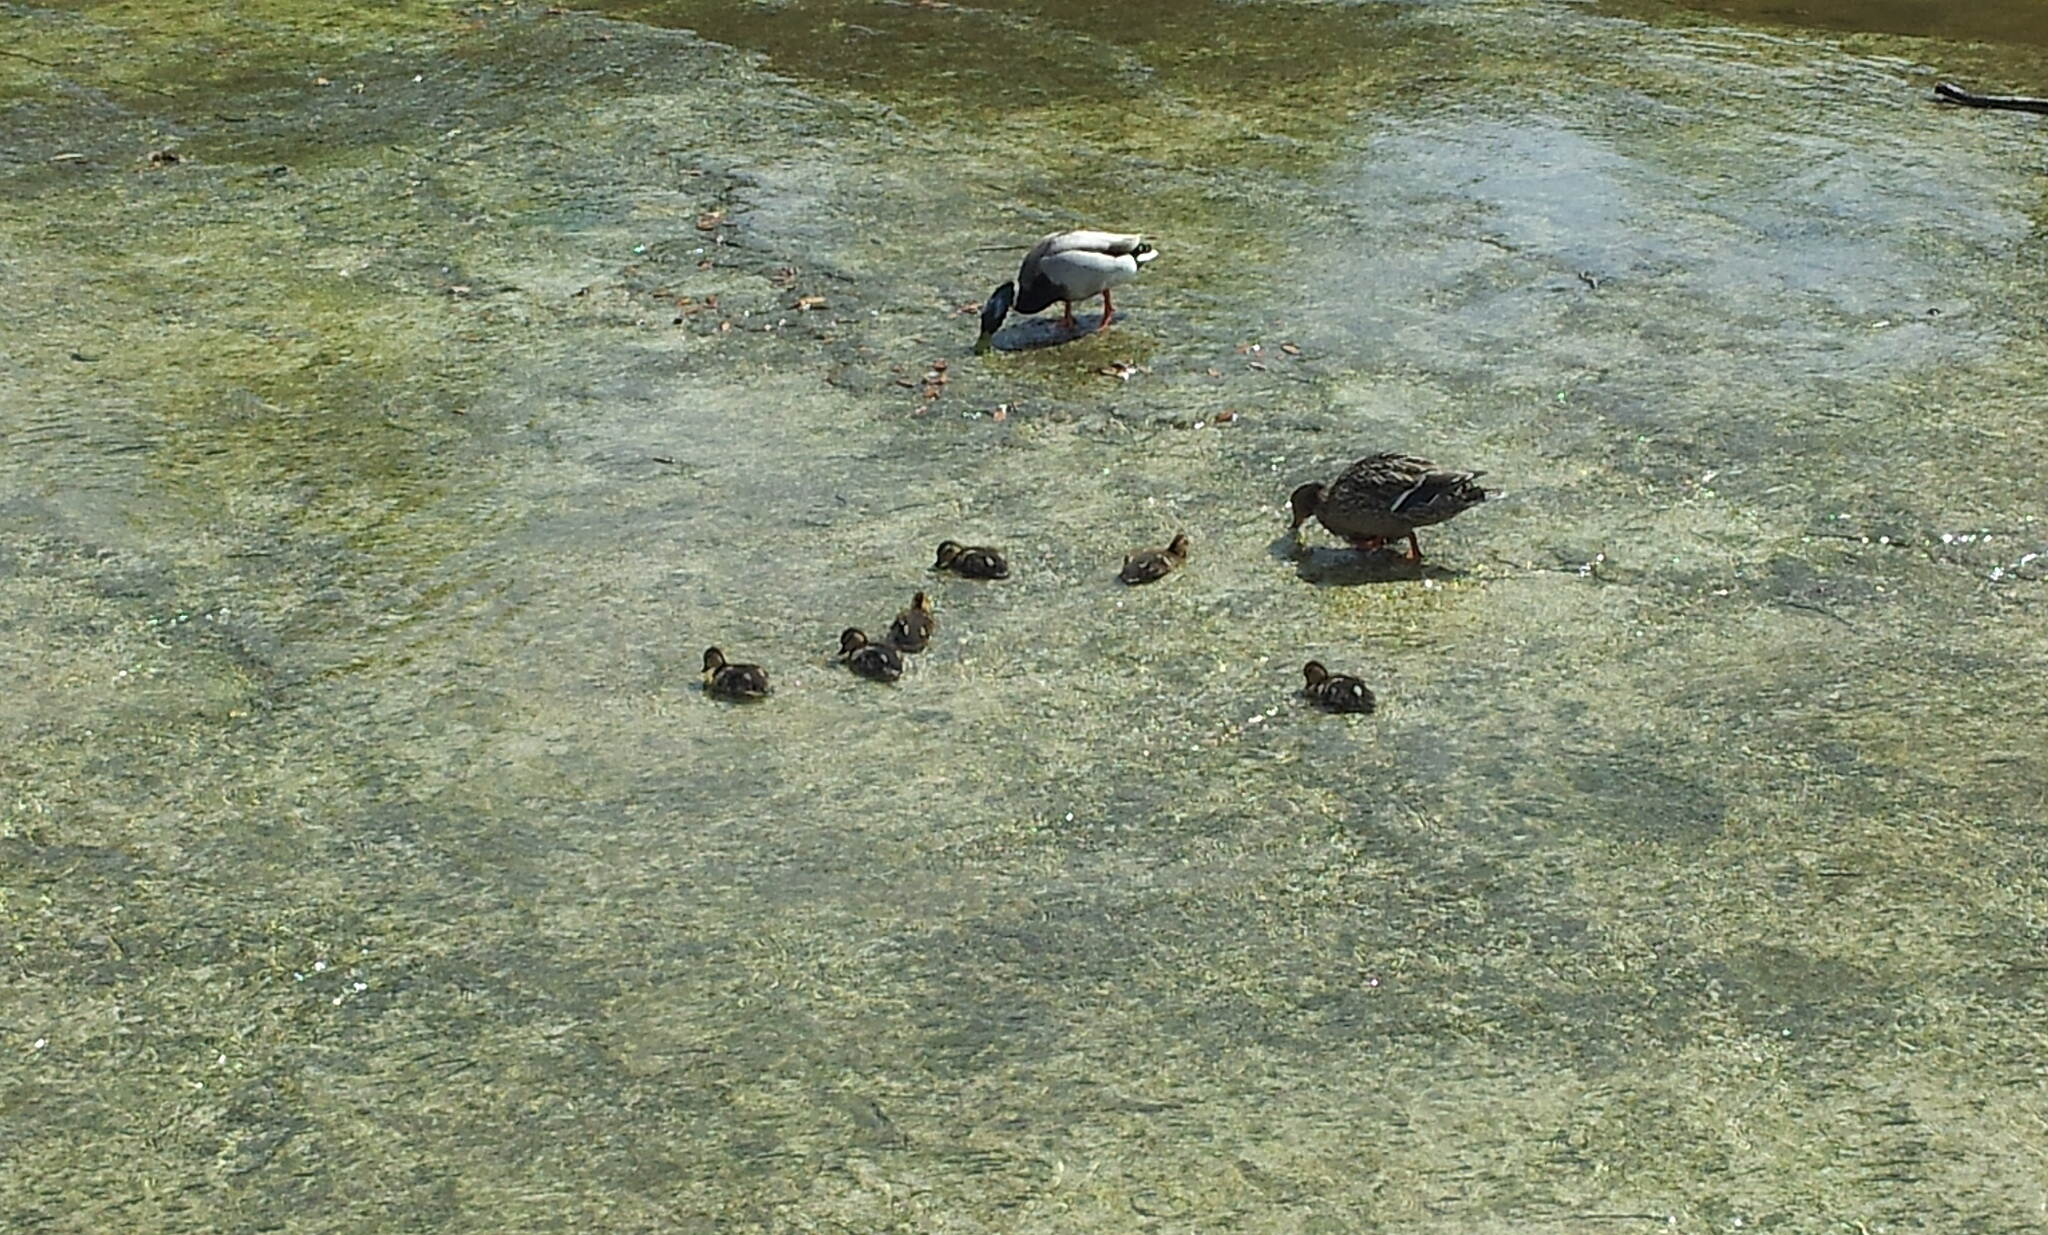 Duck Creek Trail (TX) ducklings